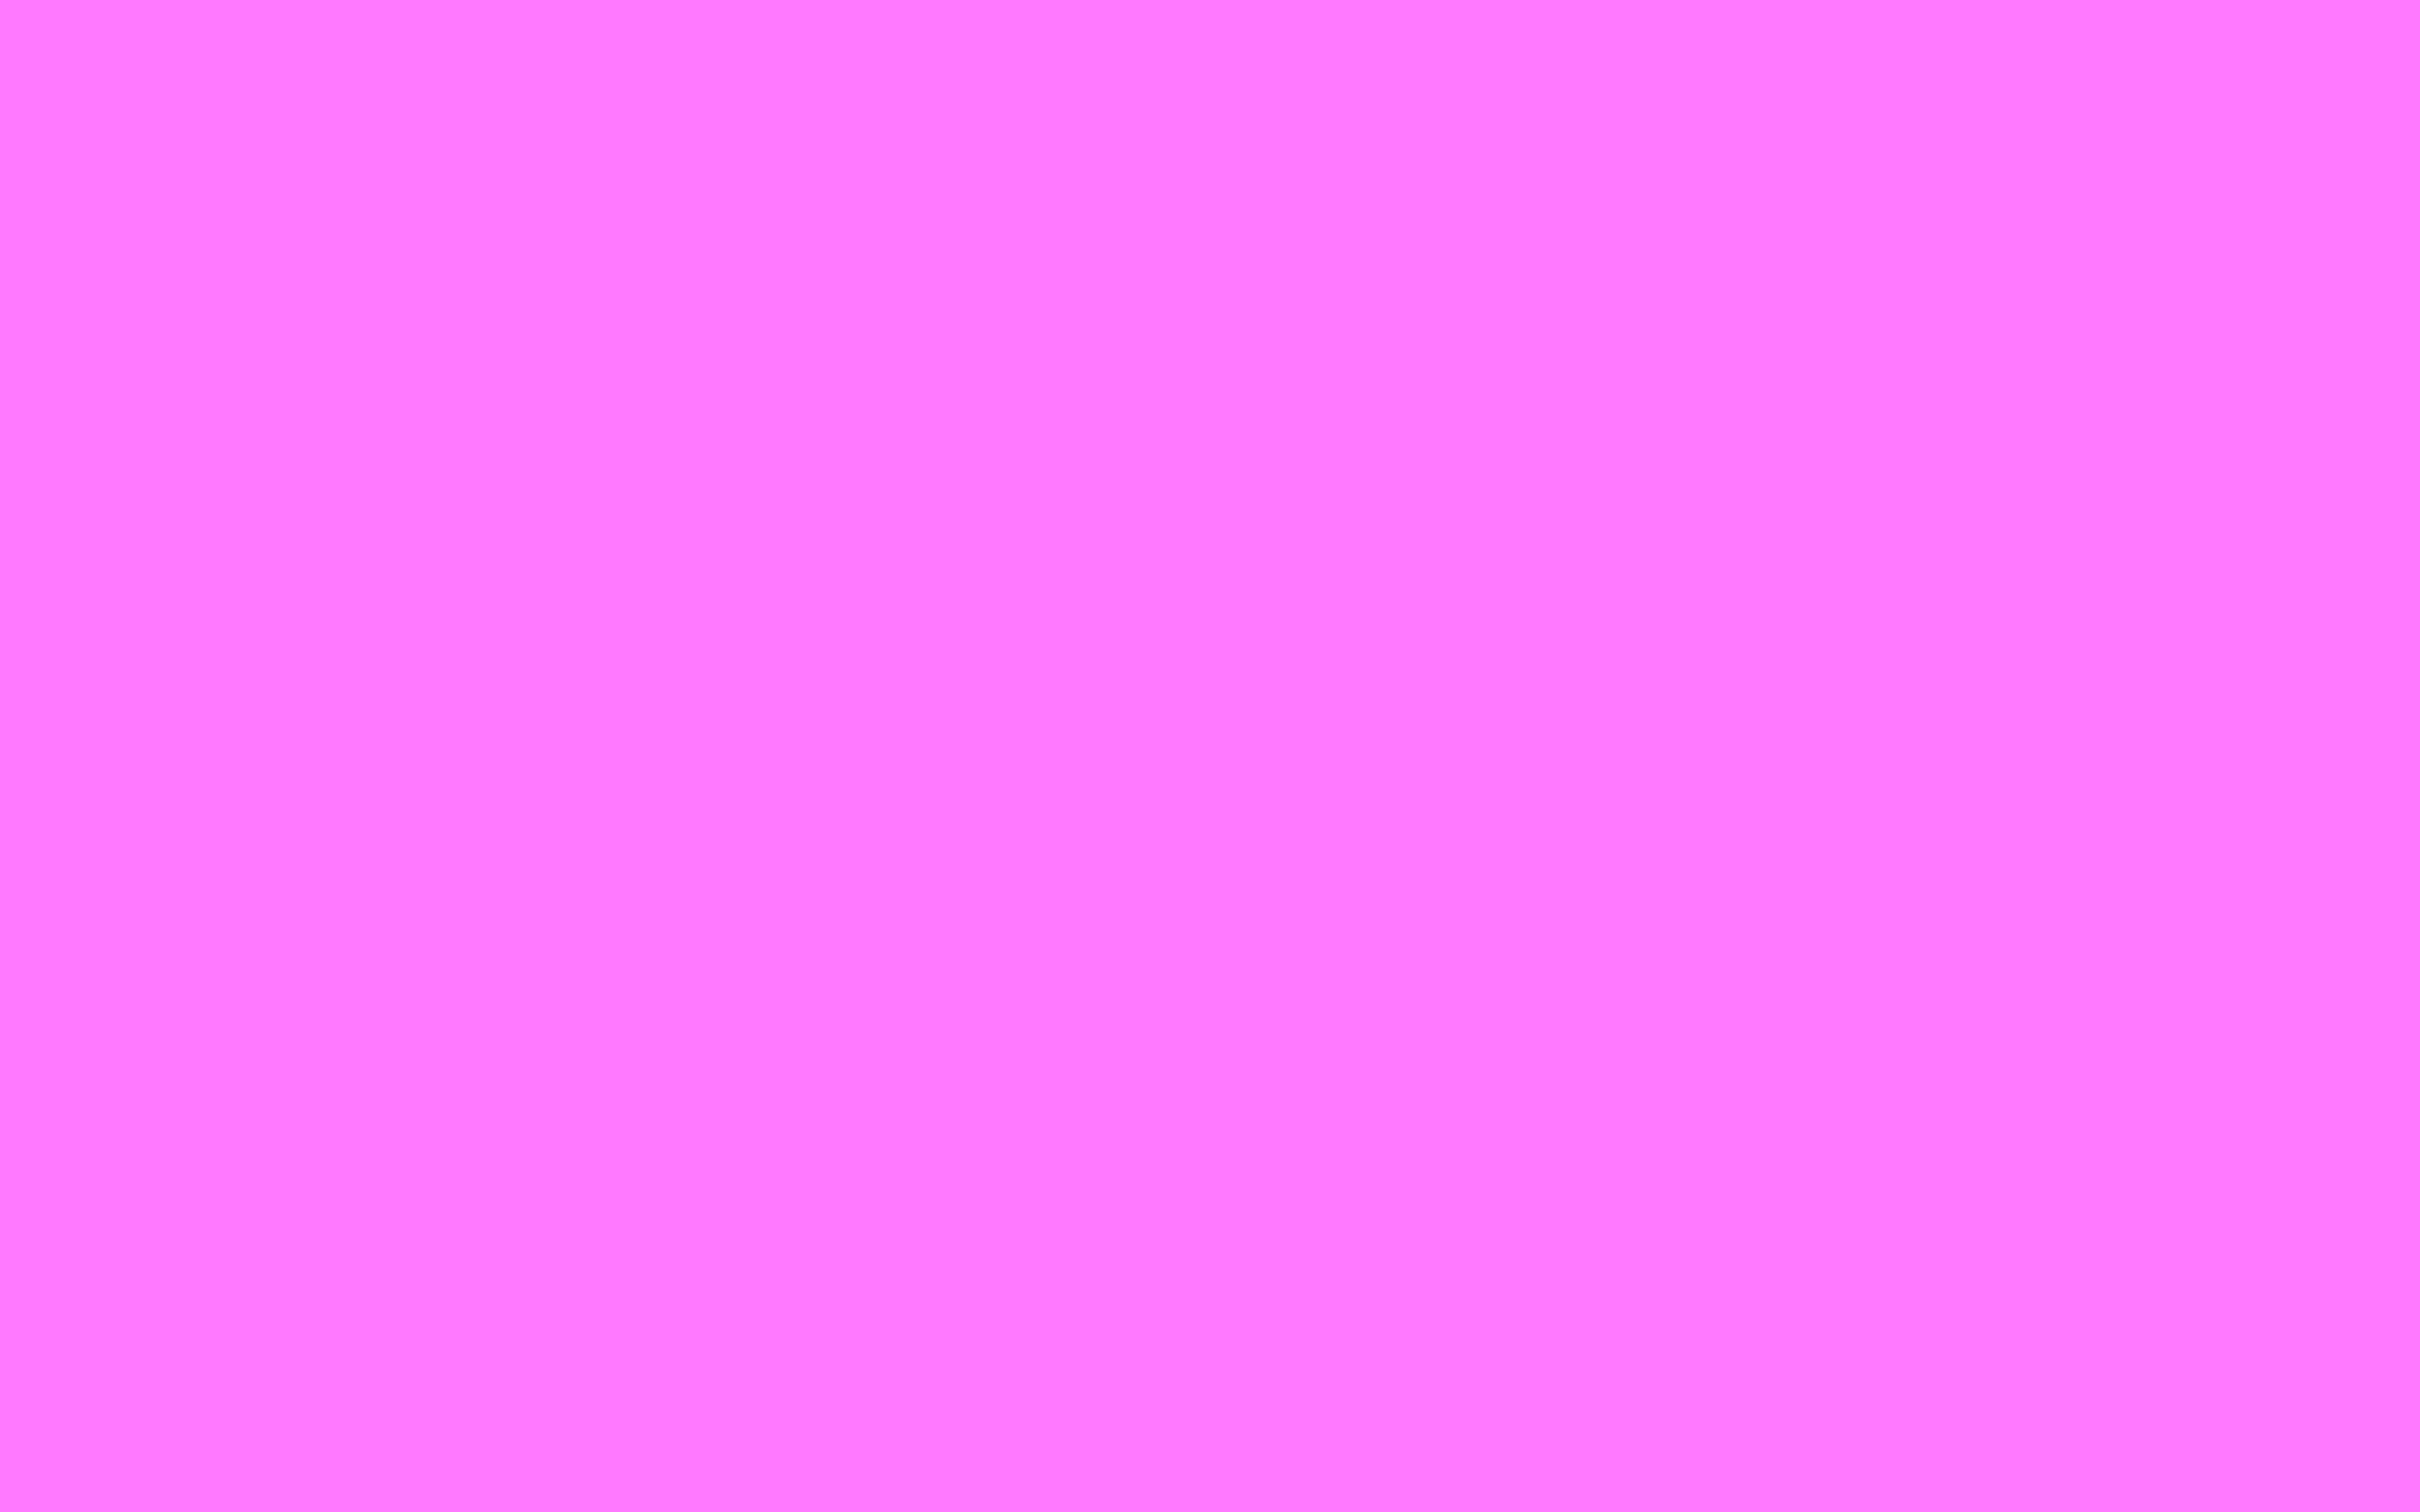 2880x1800 Fuchsia Pink Solid Color Background